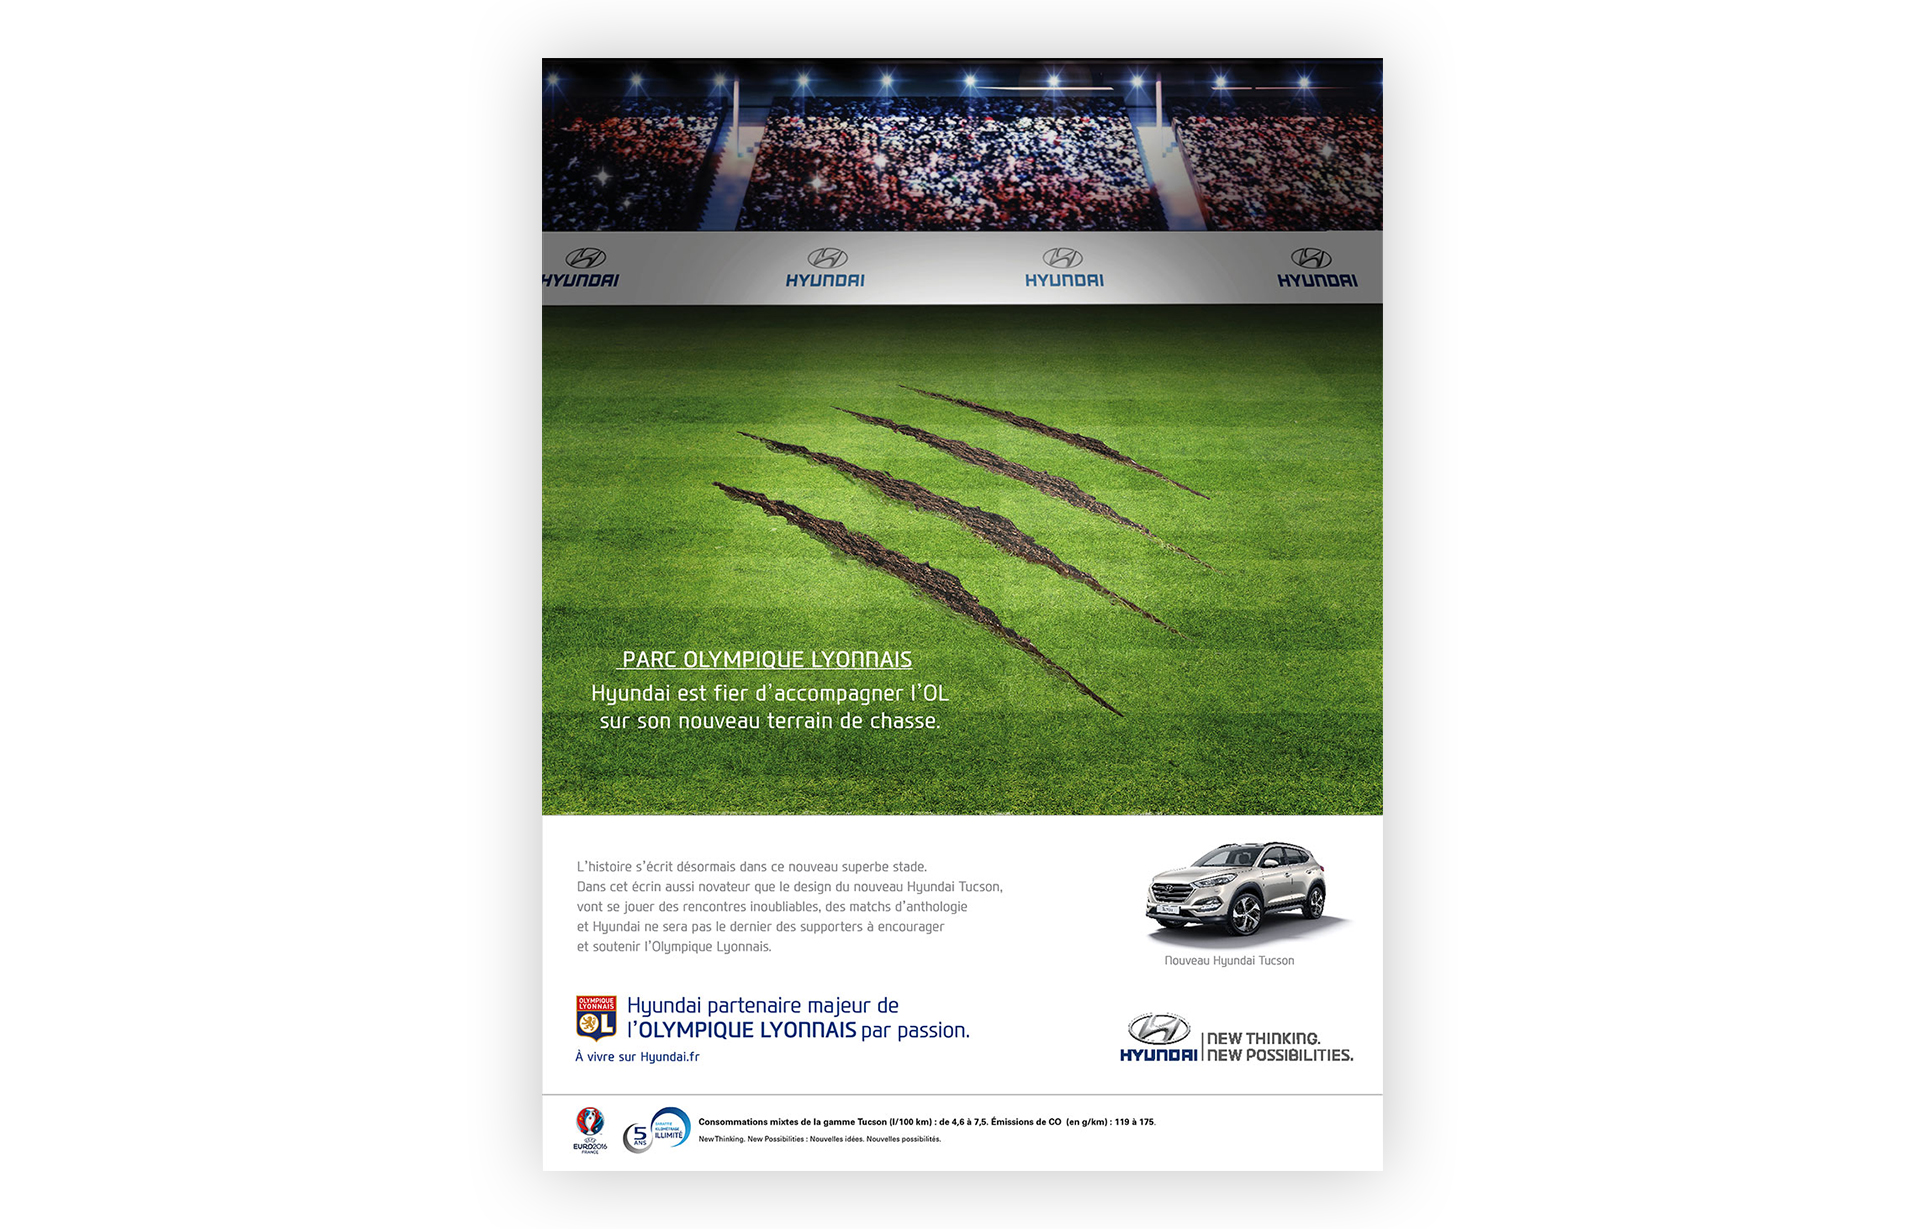 Georgeon-et-associes_agence-creation-pub_Hyundai-Stade-gerland_02